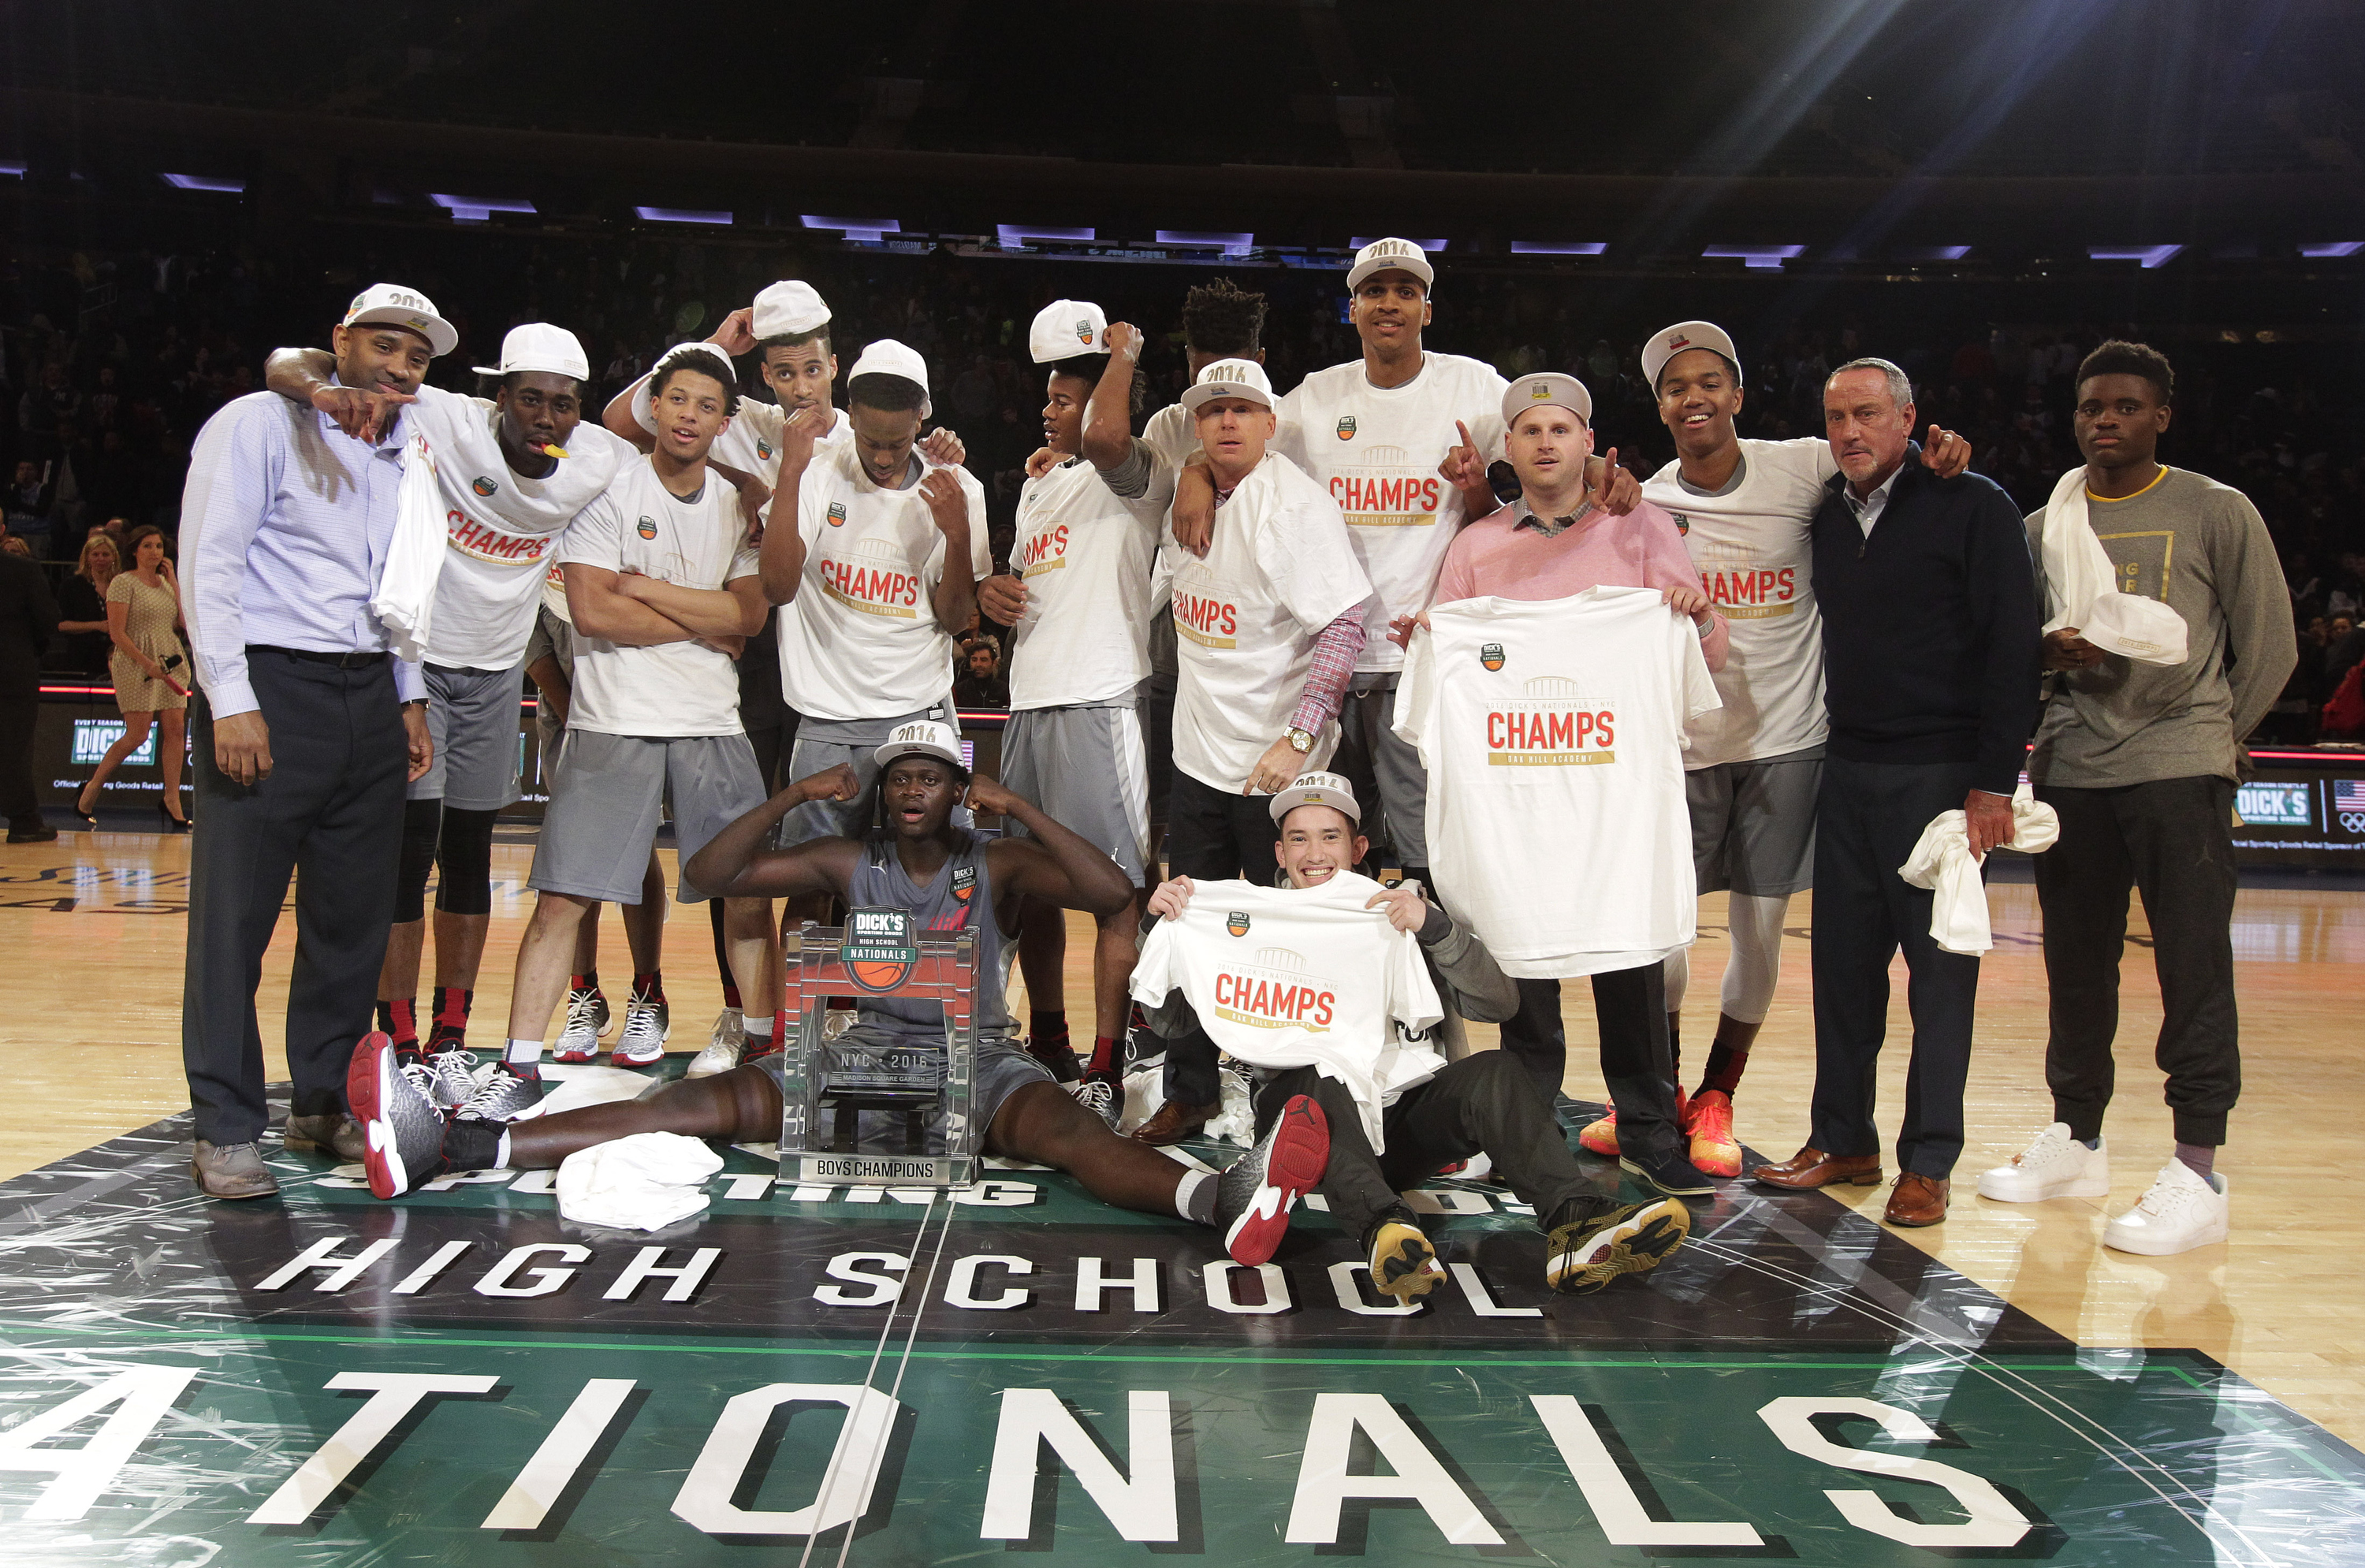 4/2/2016 12:00PM -- Middle Village, NY, U.S.A -- Oak Hill Academy poses for a team photo after defeating La Lumiere 62-60 in overtime to win the national championship during Dick's Sporting Goods High School Basketball Nationals at Madison Square Garden -- Photo by Andy Marlin USA TODAY Sports Images, Gannett ORG XMIT: US 134676 Dick's basketbal 4/1/2016 [Via MerlinFTP Drop]